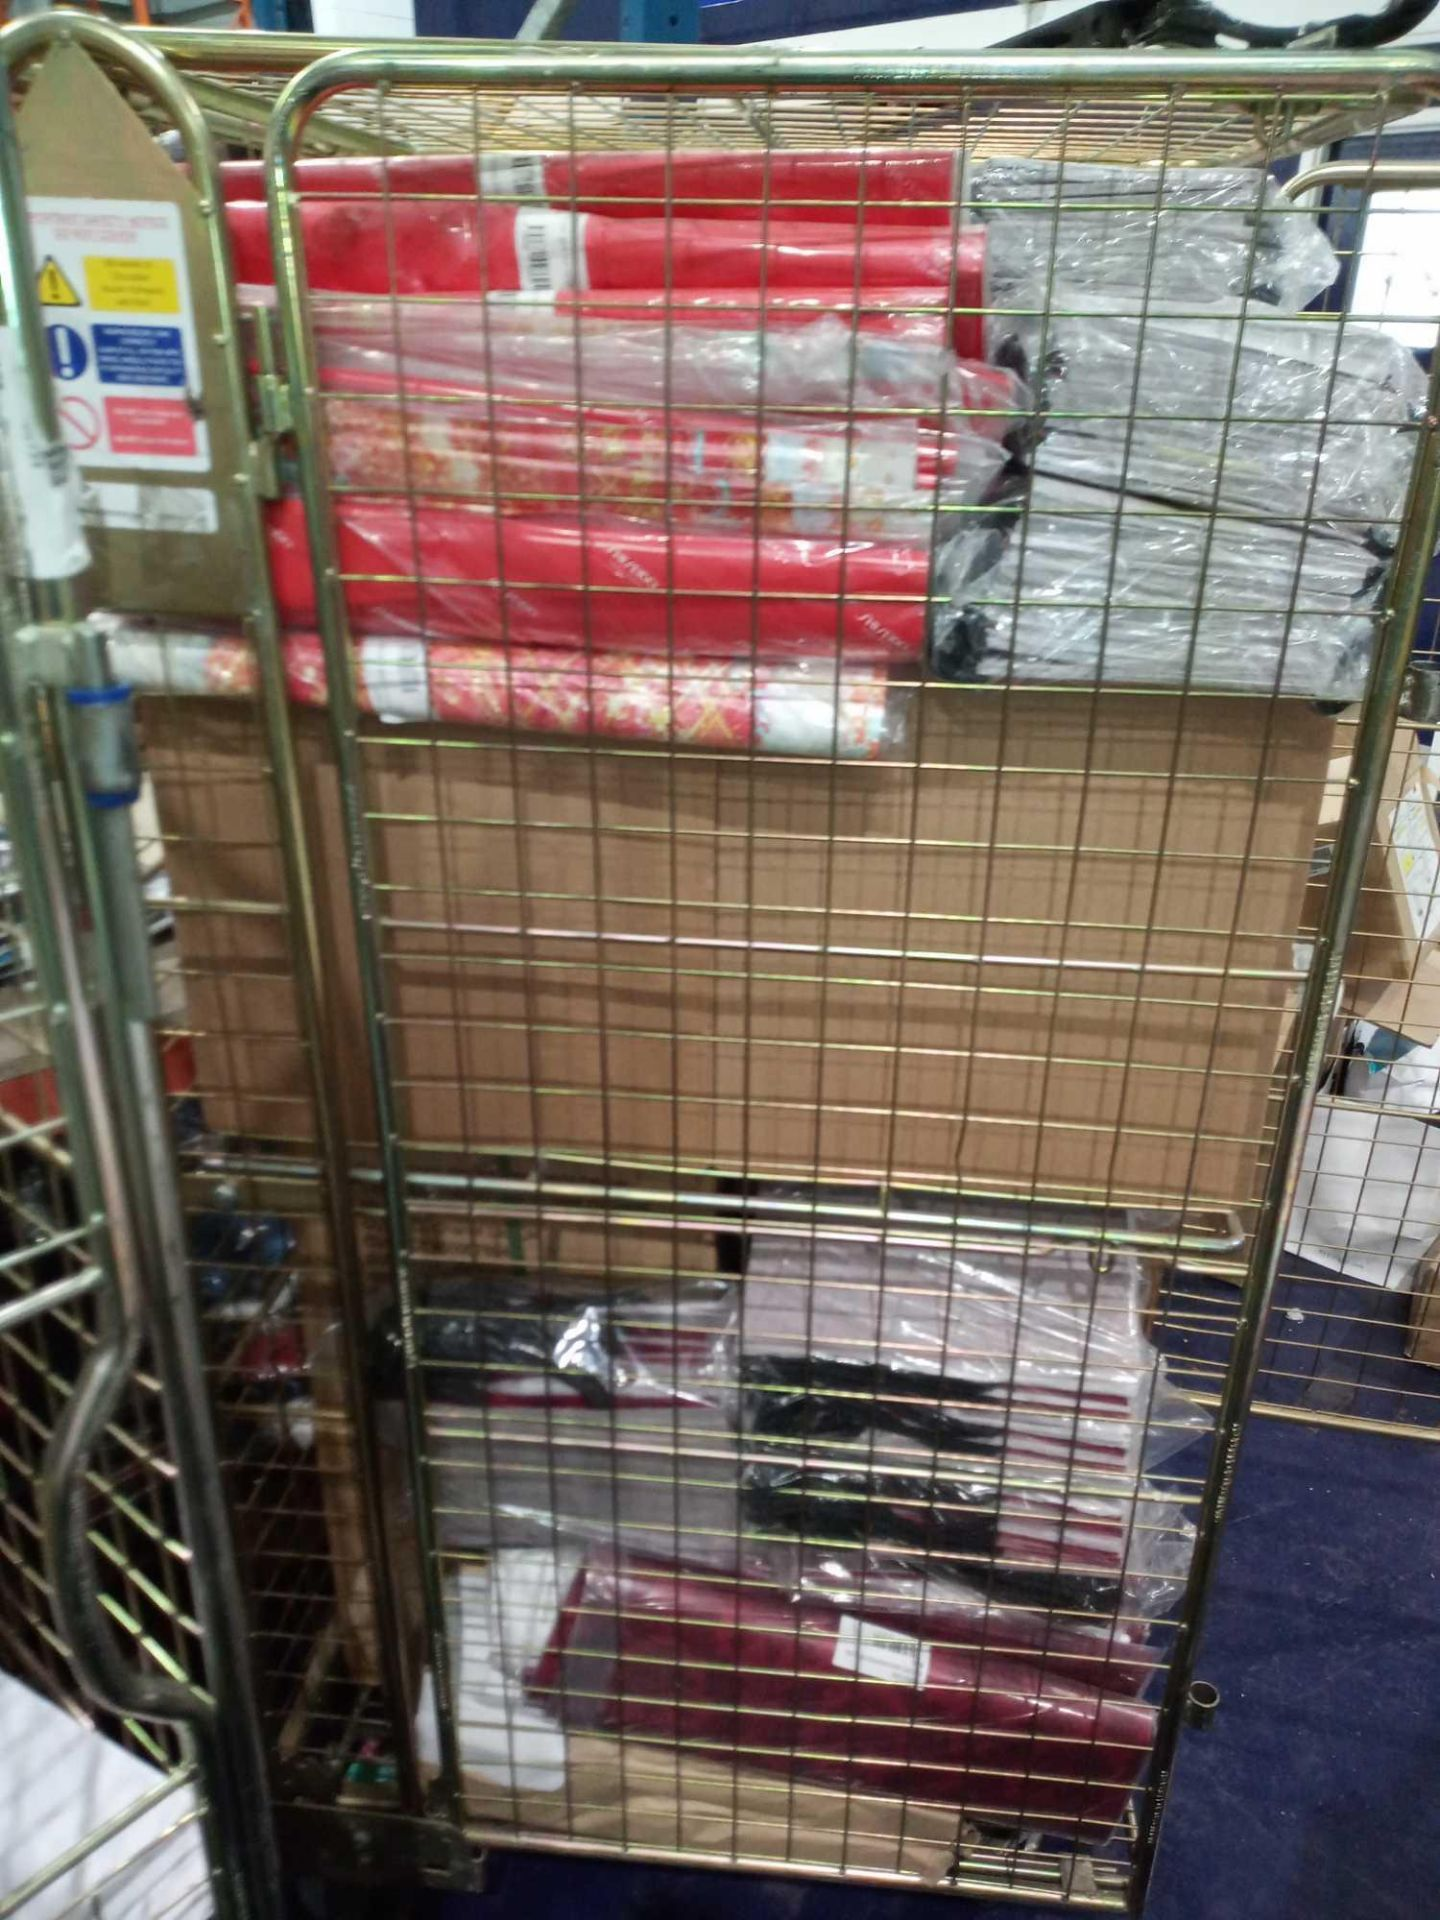 Pallet To Contain A Large Assortment Of John Lewis Blinds And Curtains To Include Grey Curtains, - Image 5 of 5